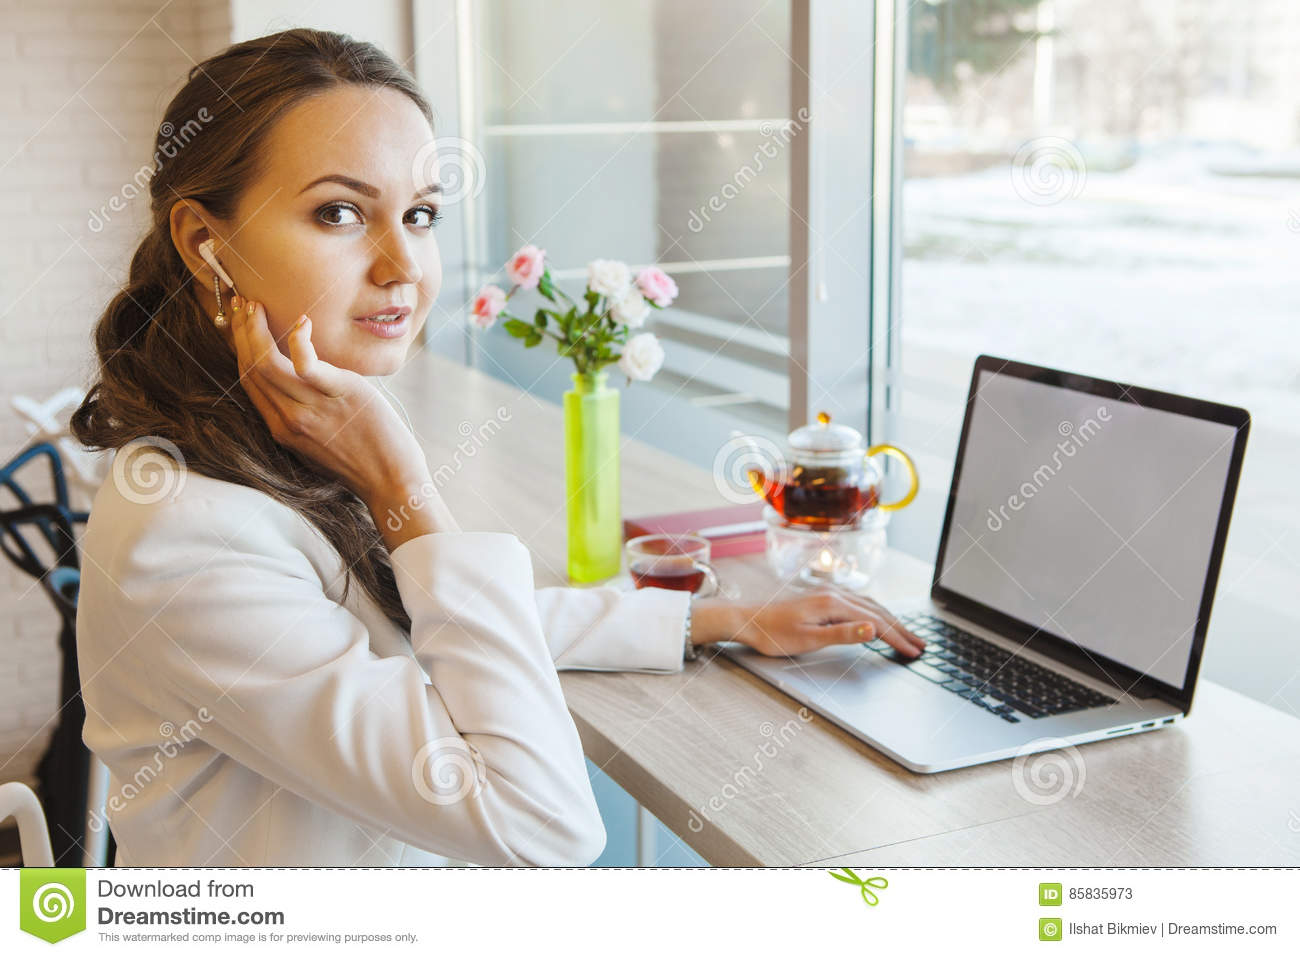 Girl with telephone headset working on computer